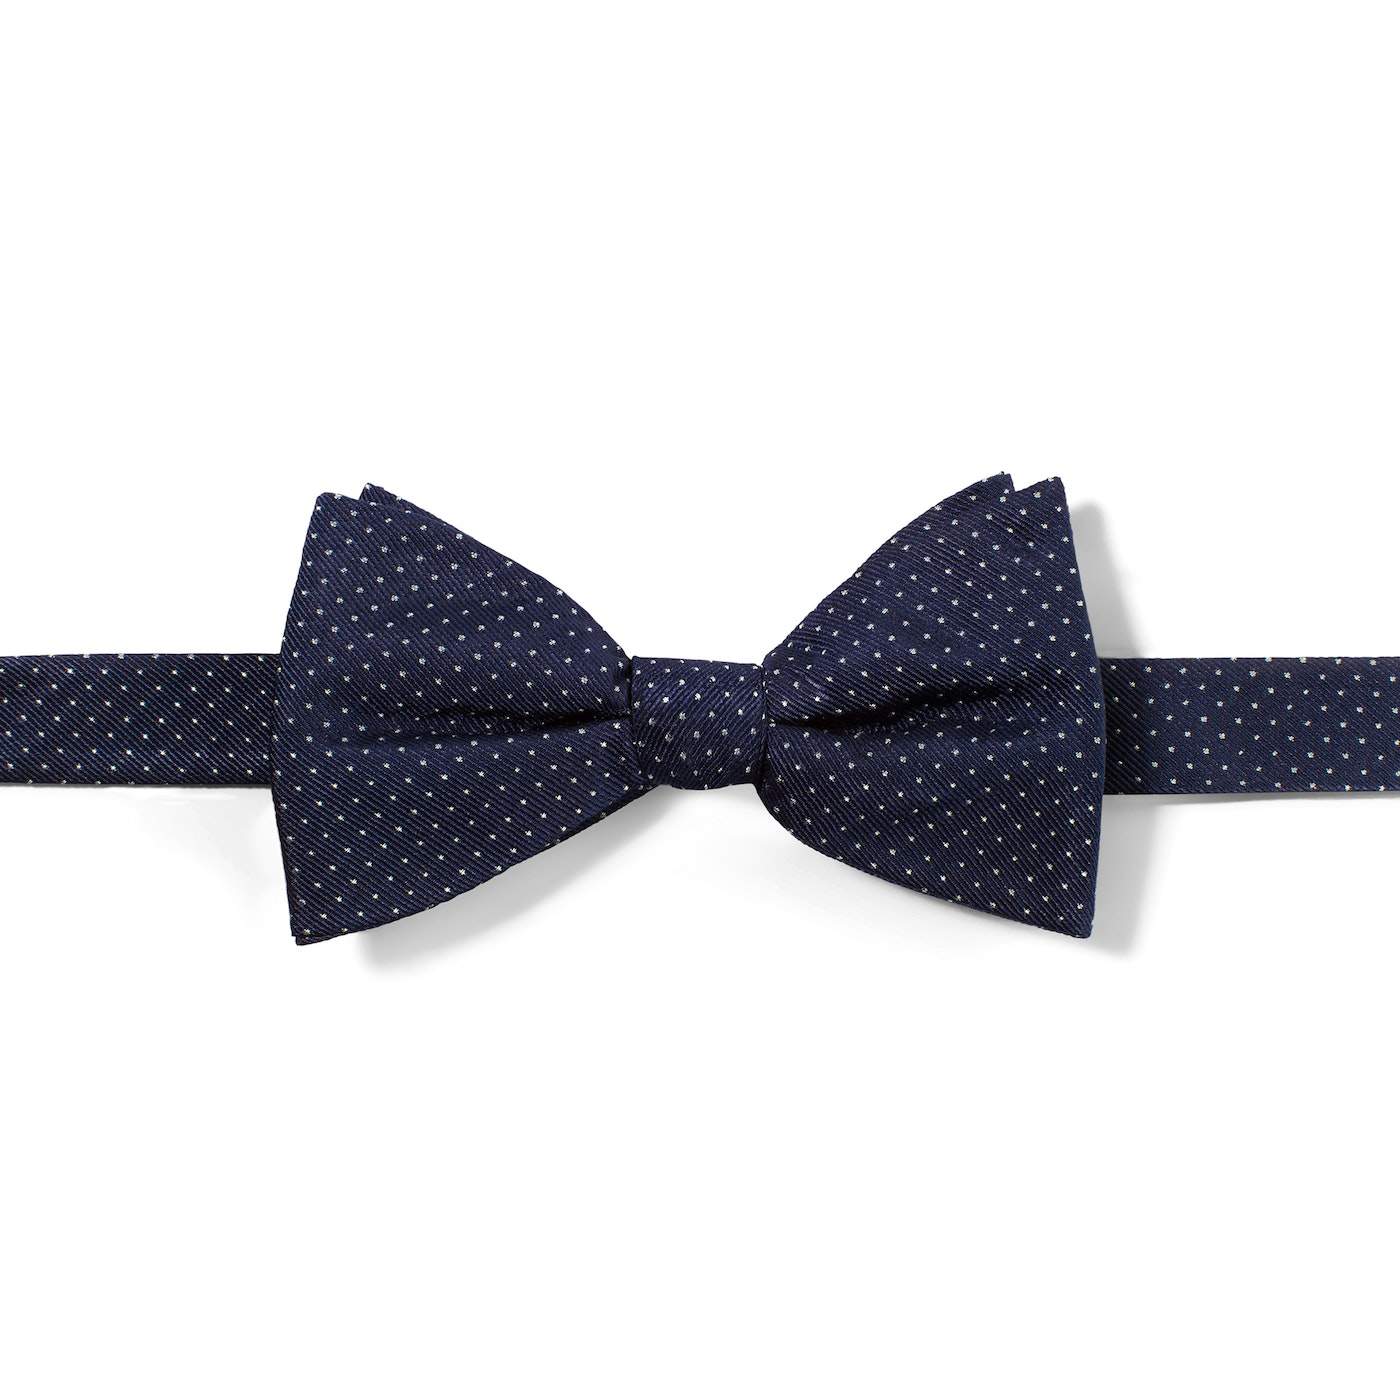 Navy and White Pin Dot Tie